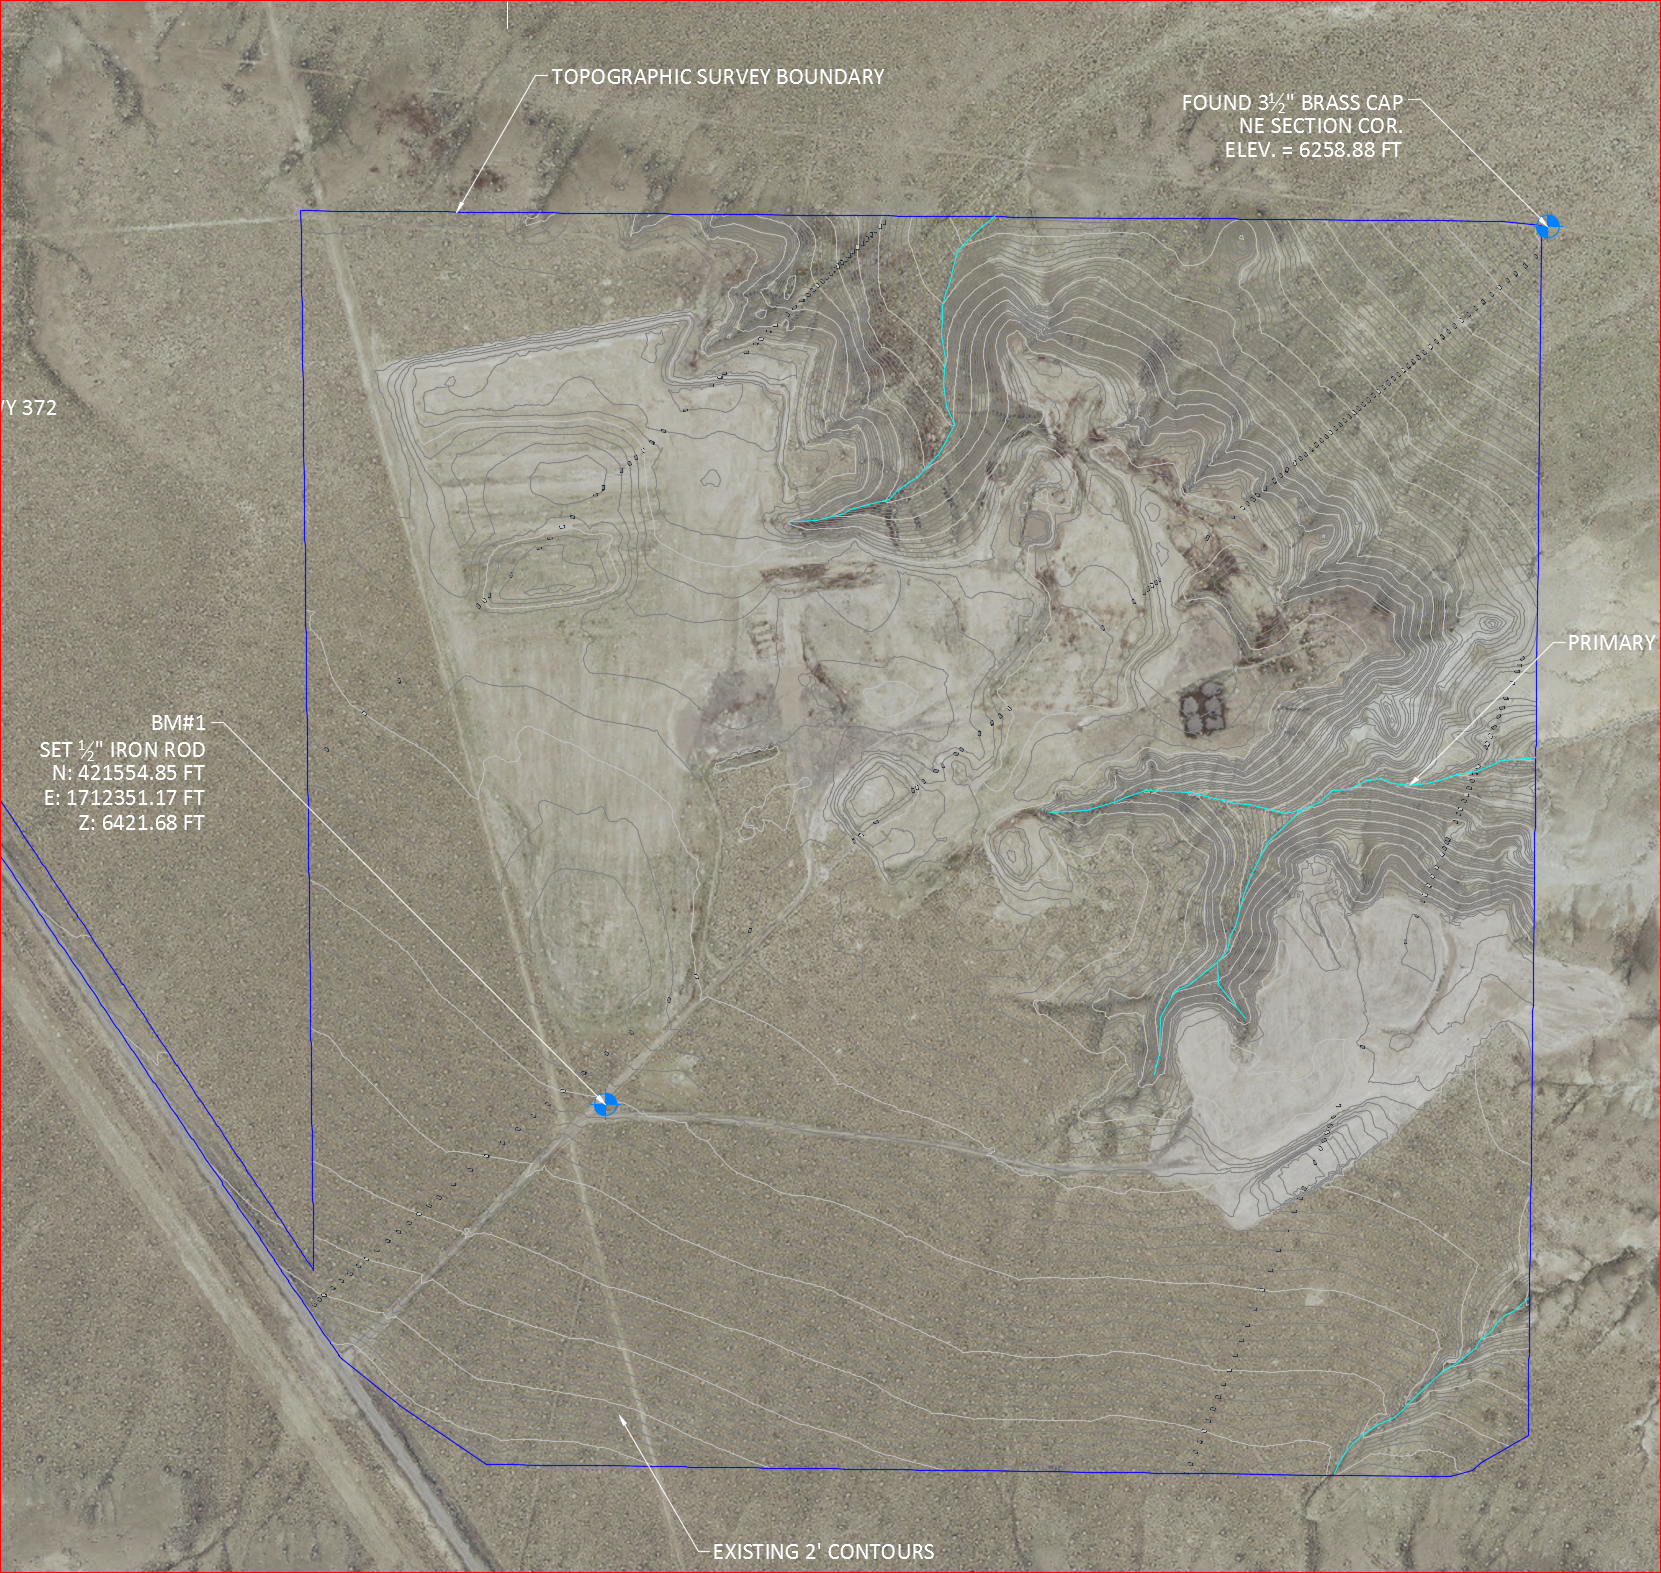 Sweetwater, TX - Topographic Survey